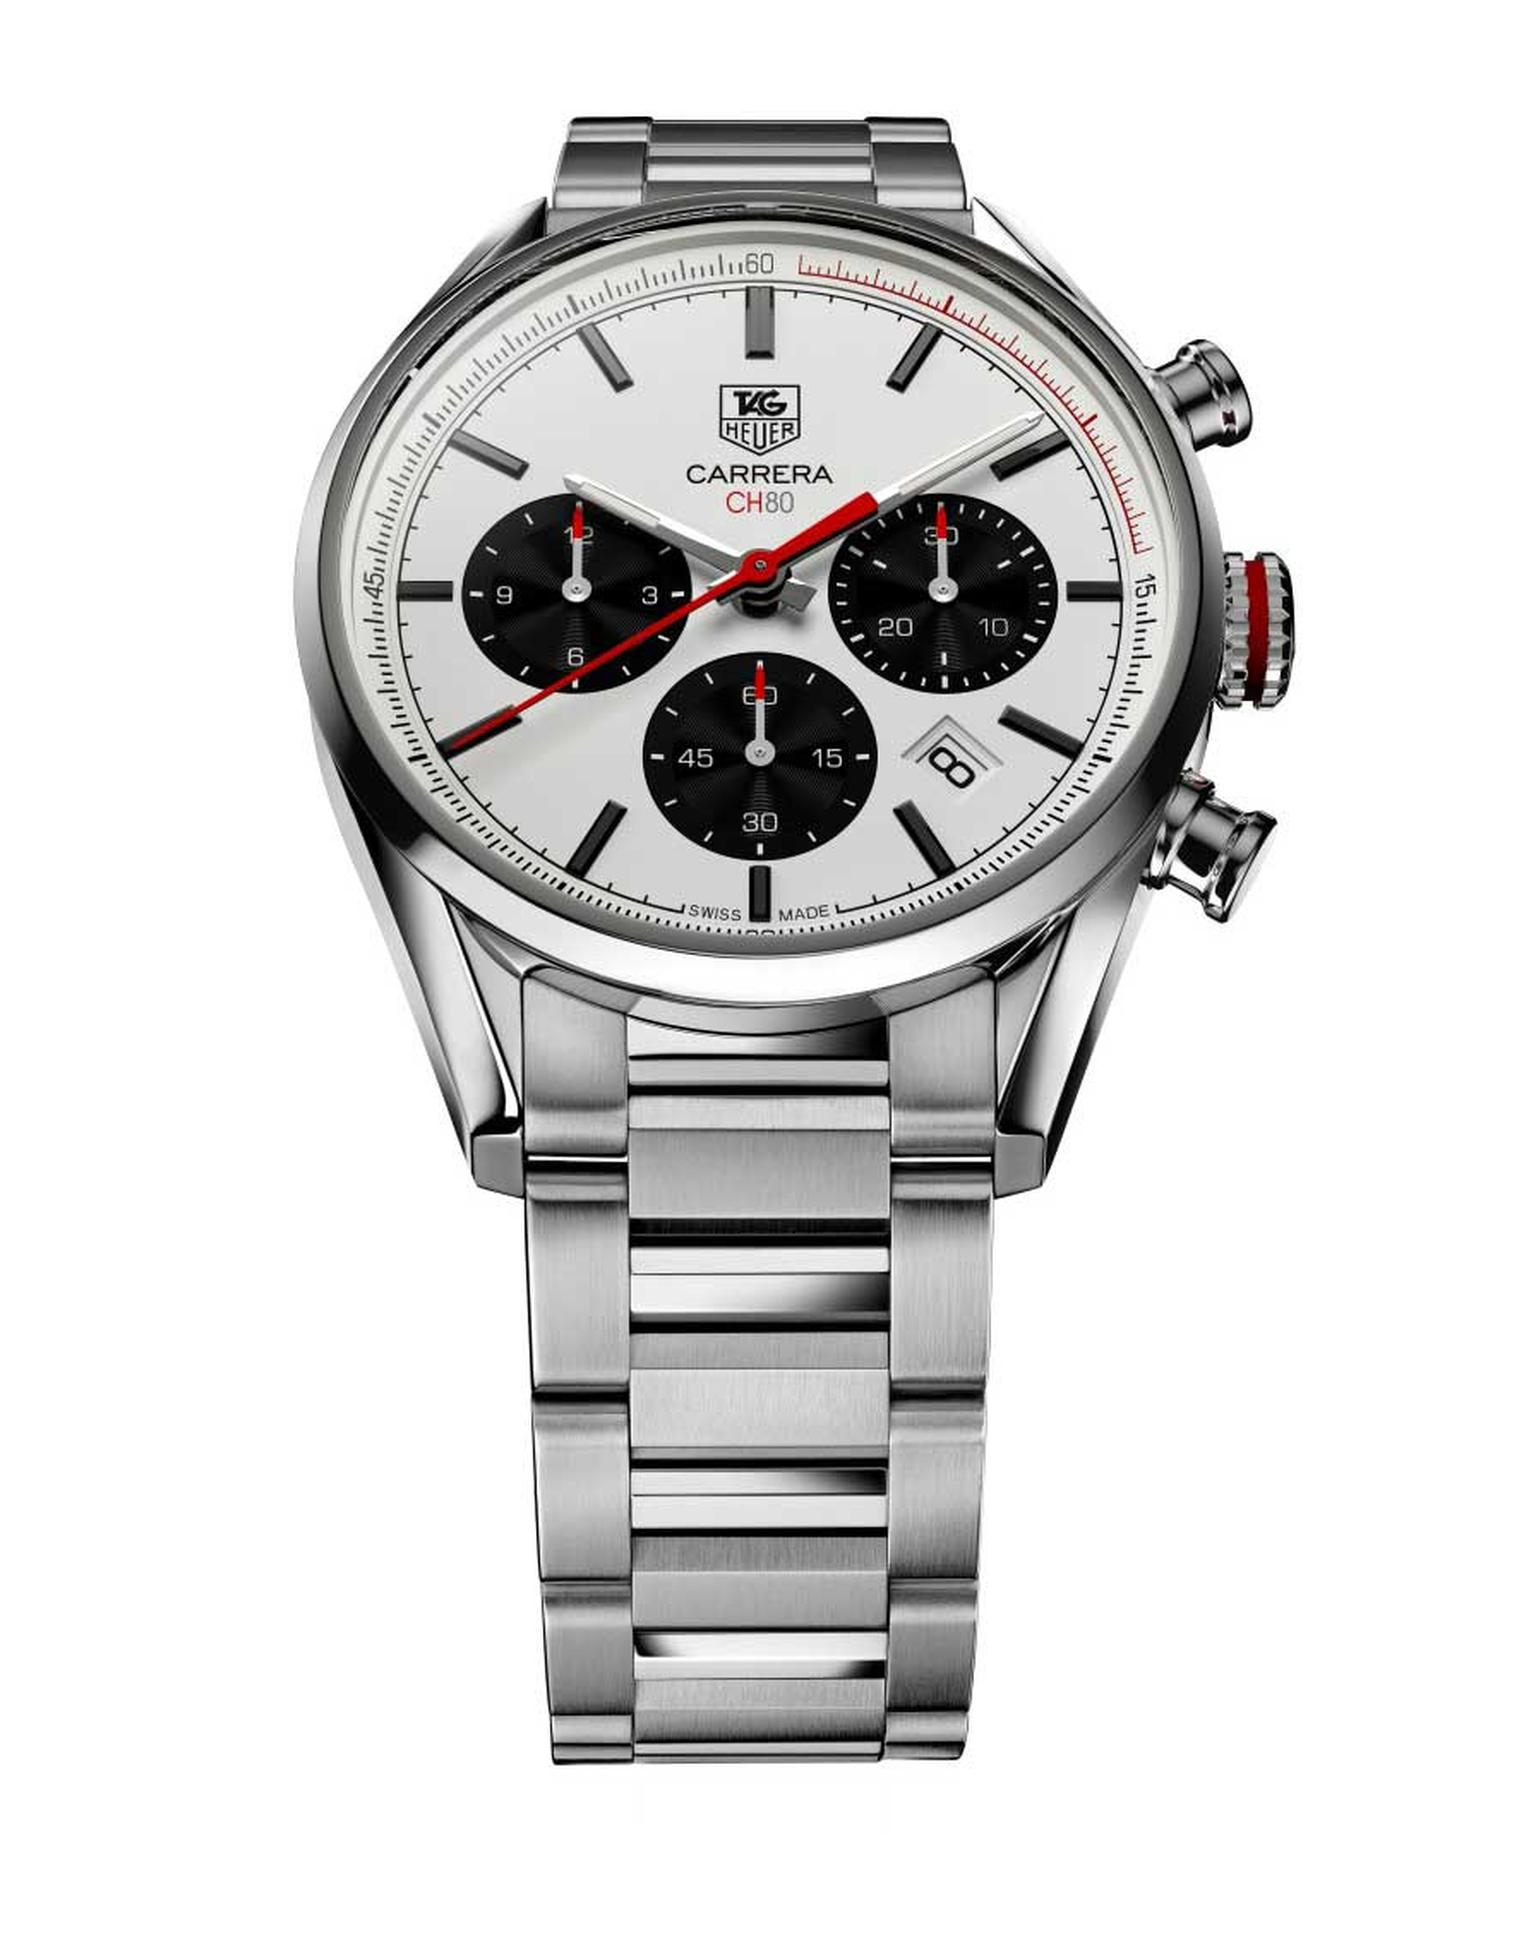 The TAG Heuer Carrera chronograph watch, conceived by Jack Heuer in 1963, was named after the Carrera Panamericana race and is the very essence of a sports watch, with large chronograph pushers, a legible dial, and a shock and water-resistant case to ride